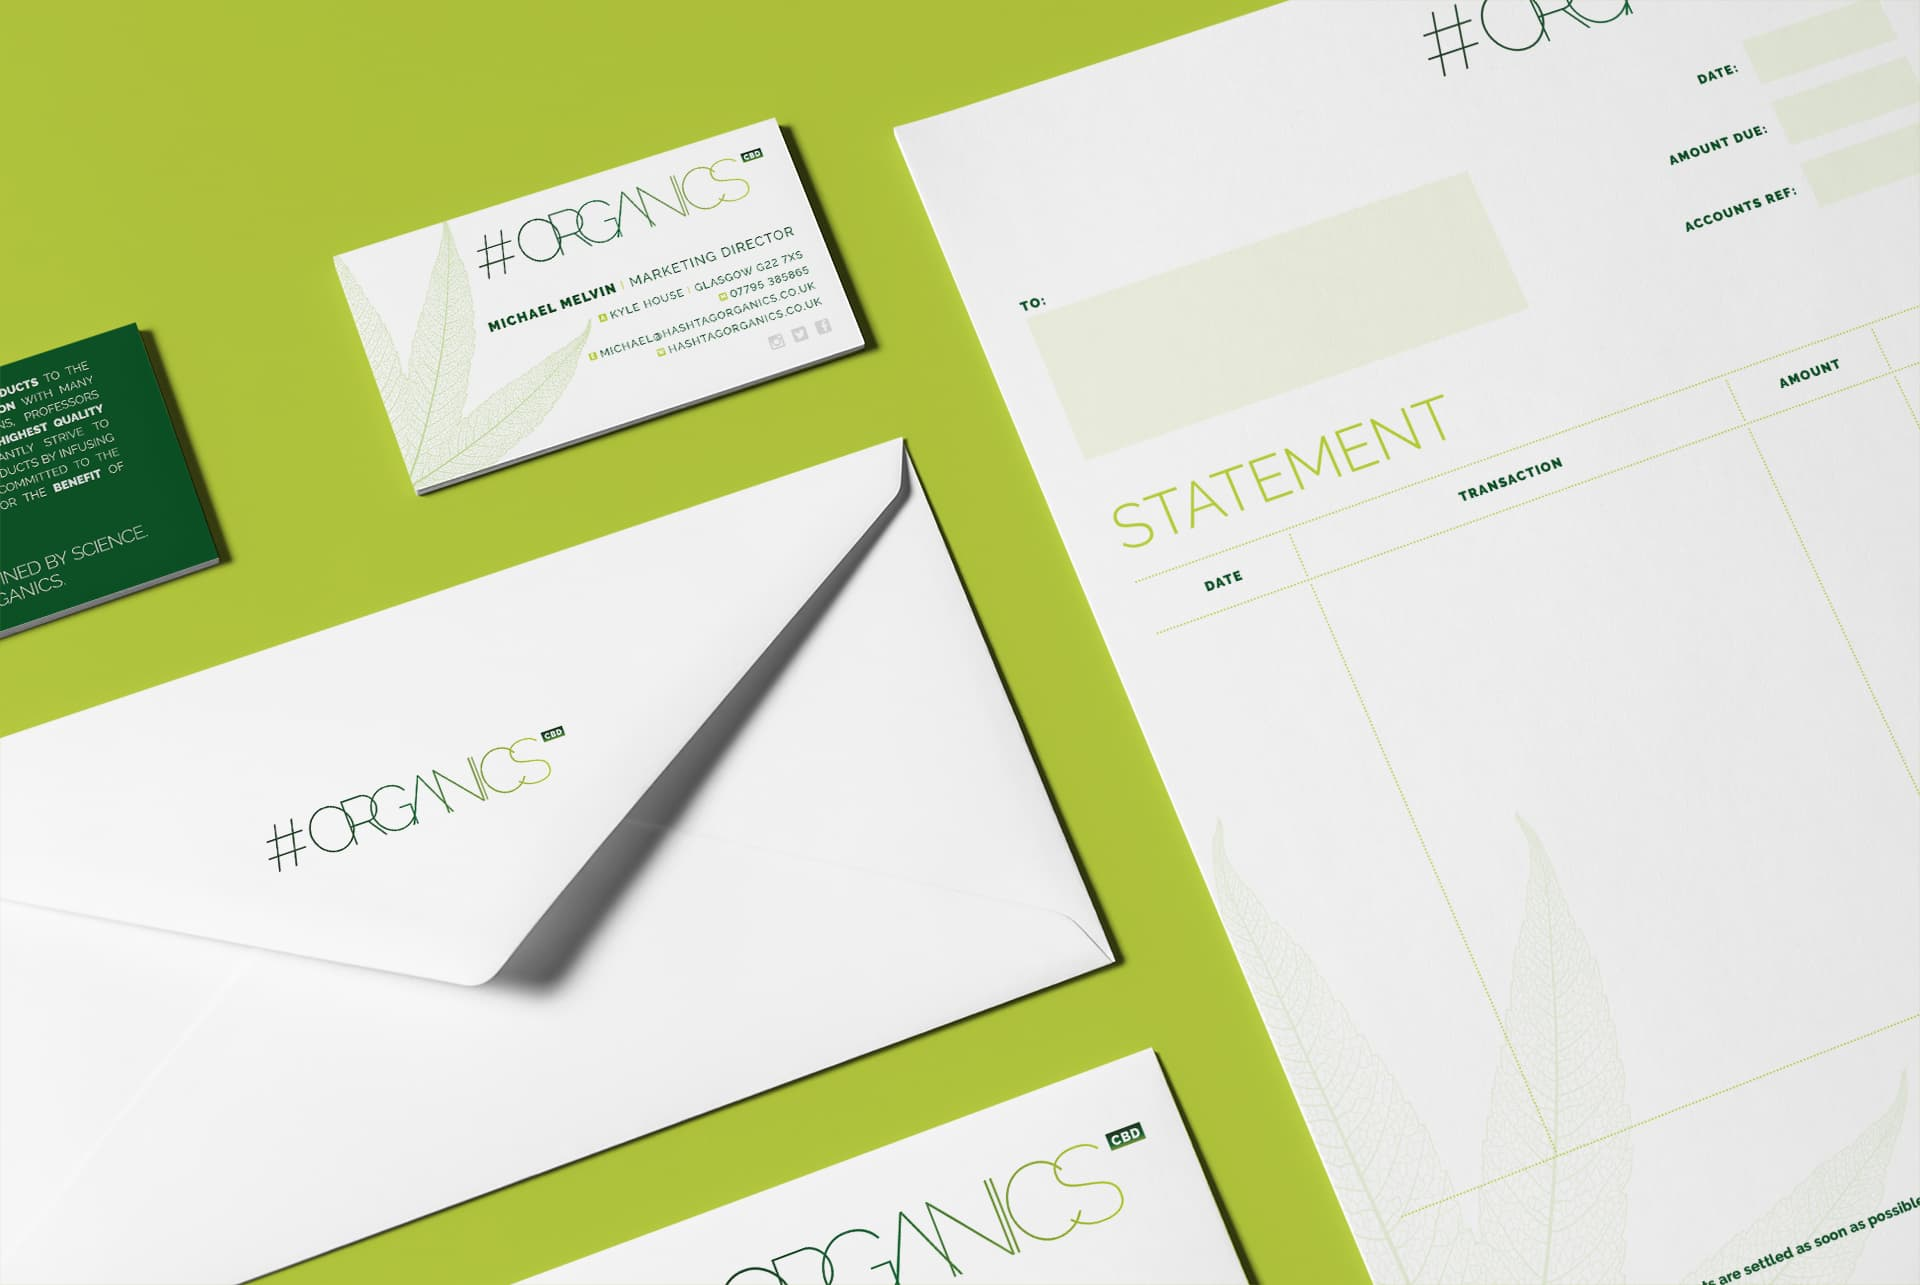 Hashtag Organics Business Stationery including Business Cards, Envelope, Letterhead and Invoice